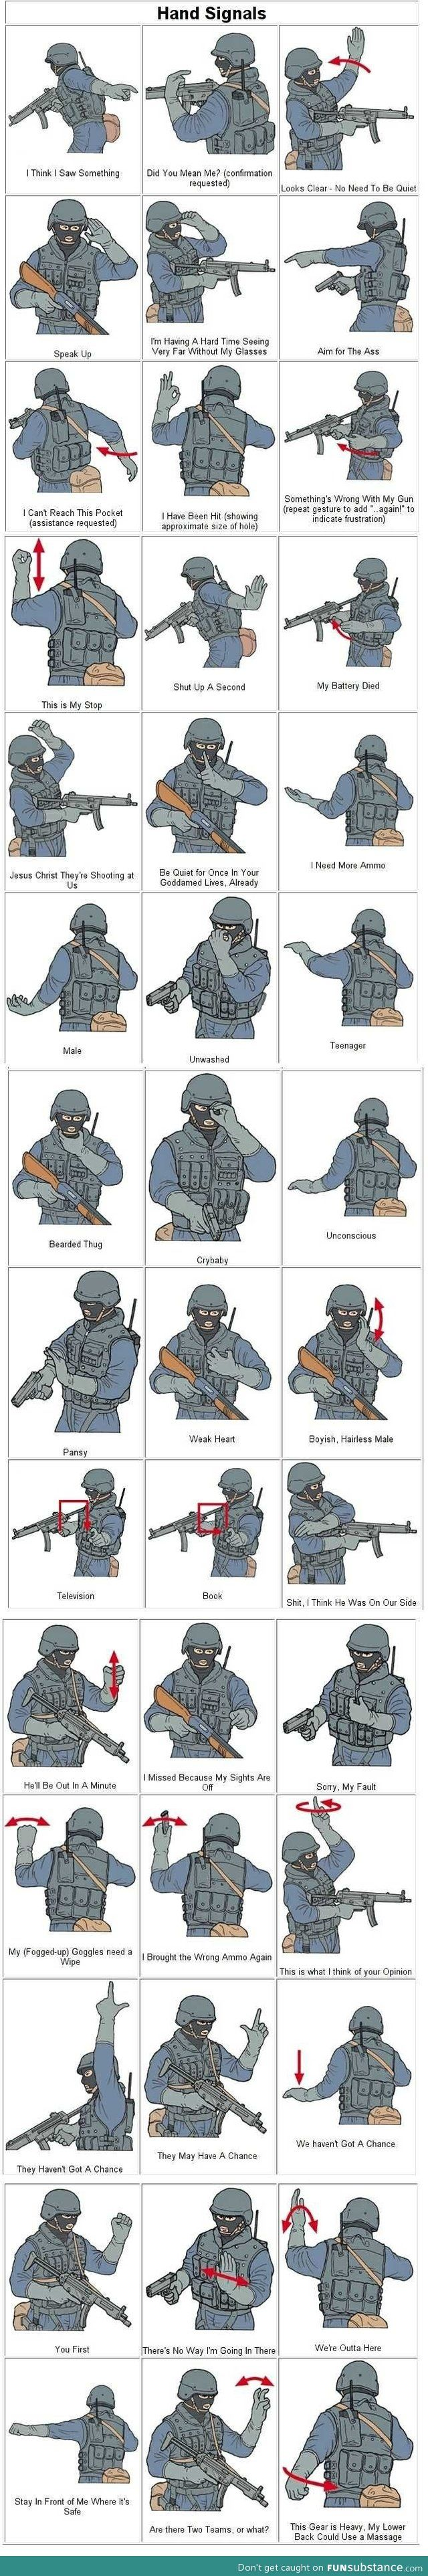 Military sign language